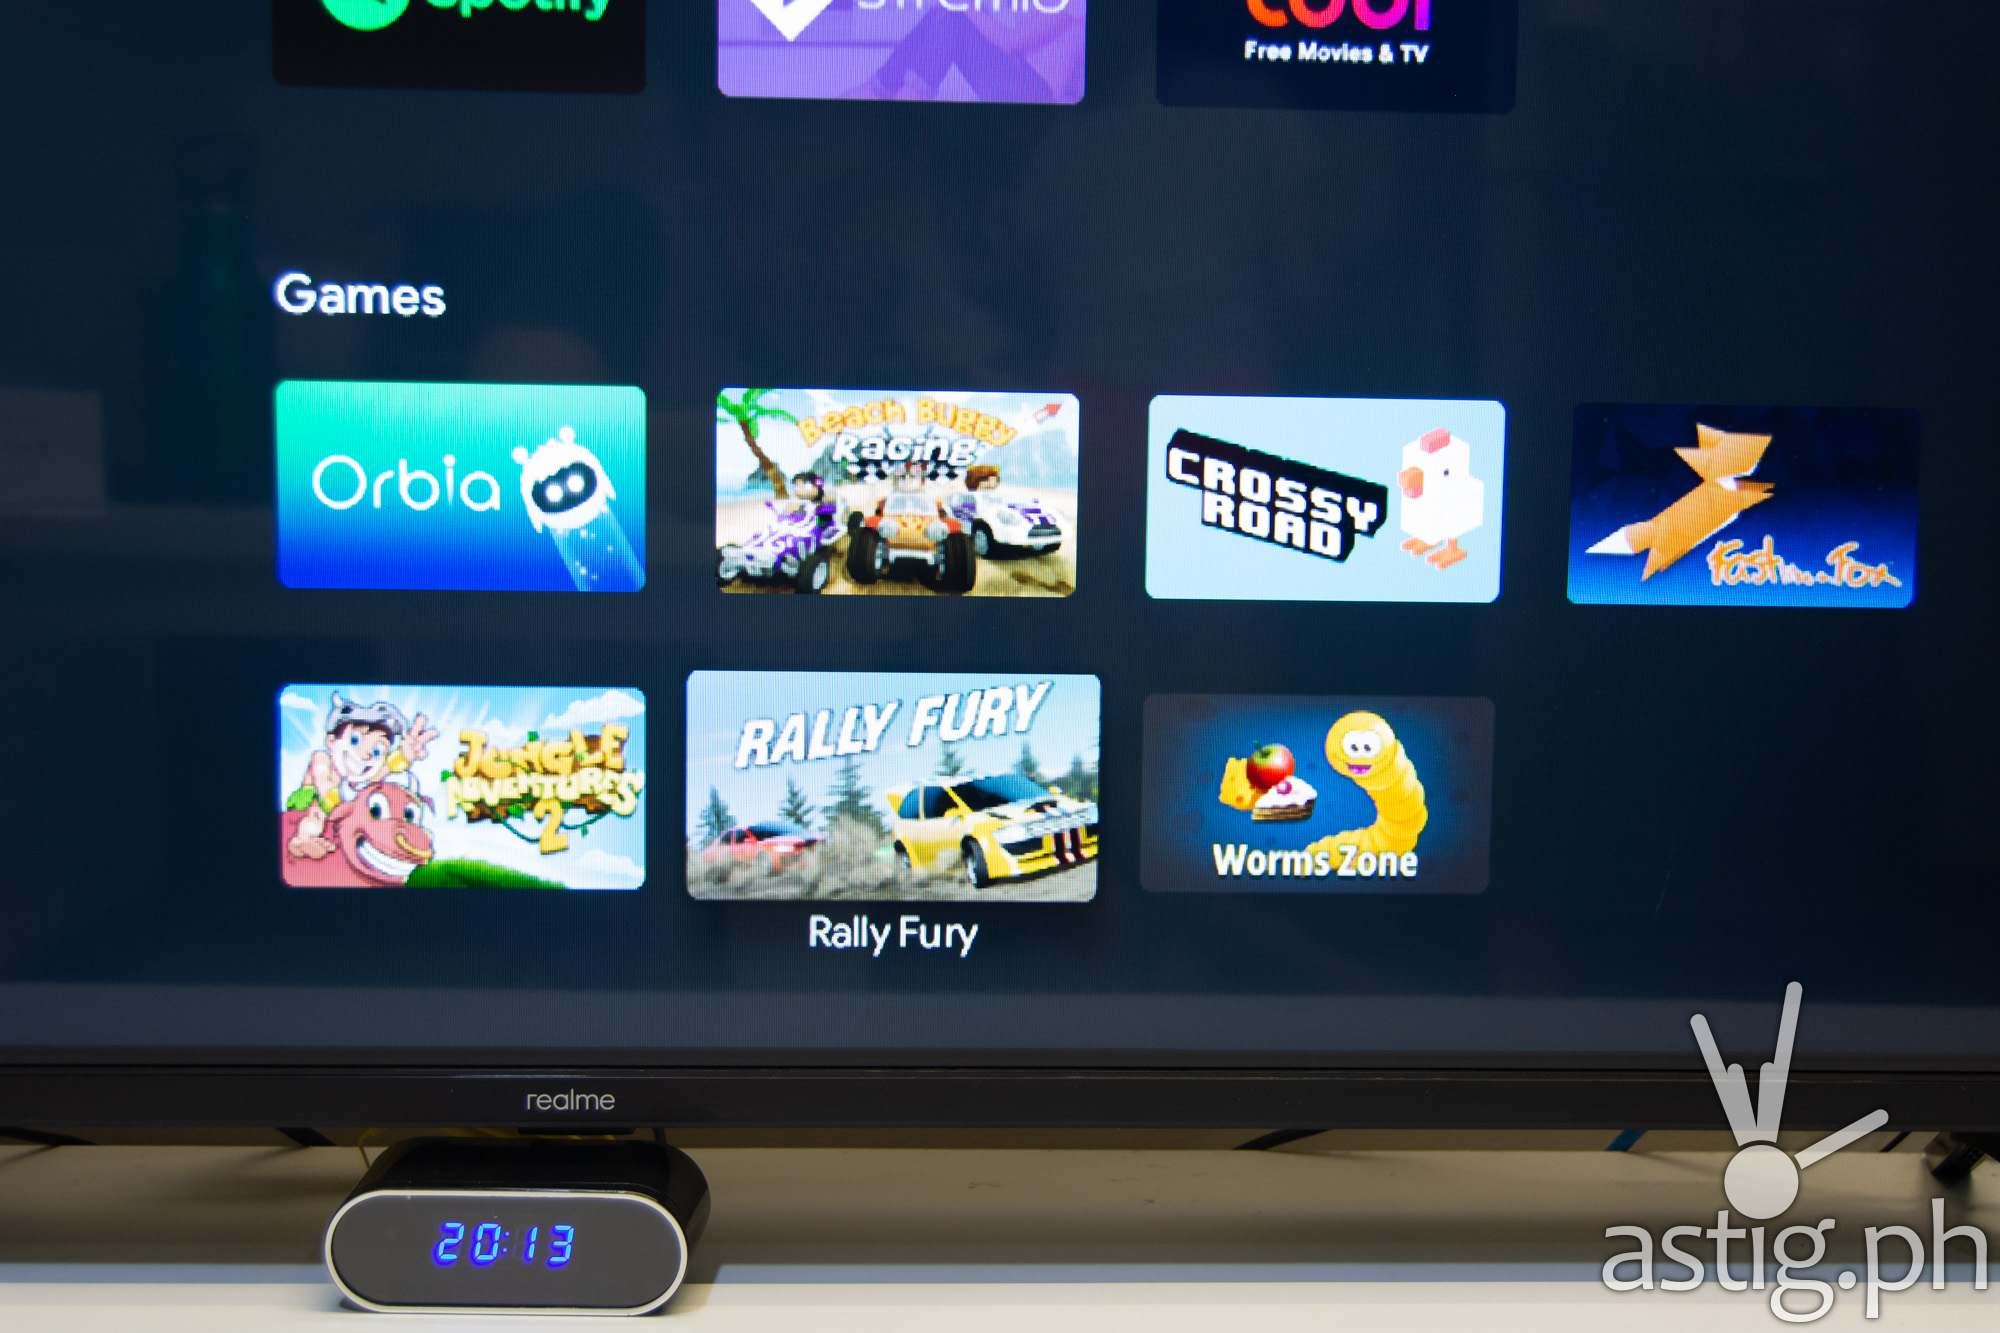 Games - realme TV (Philippines)